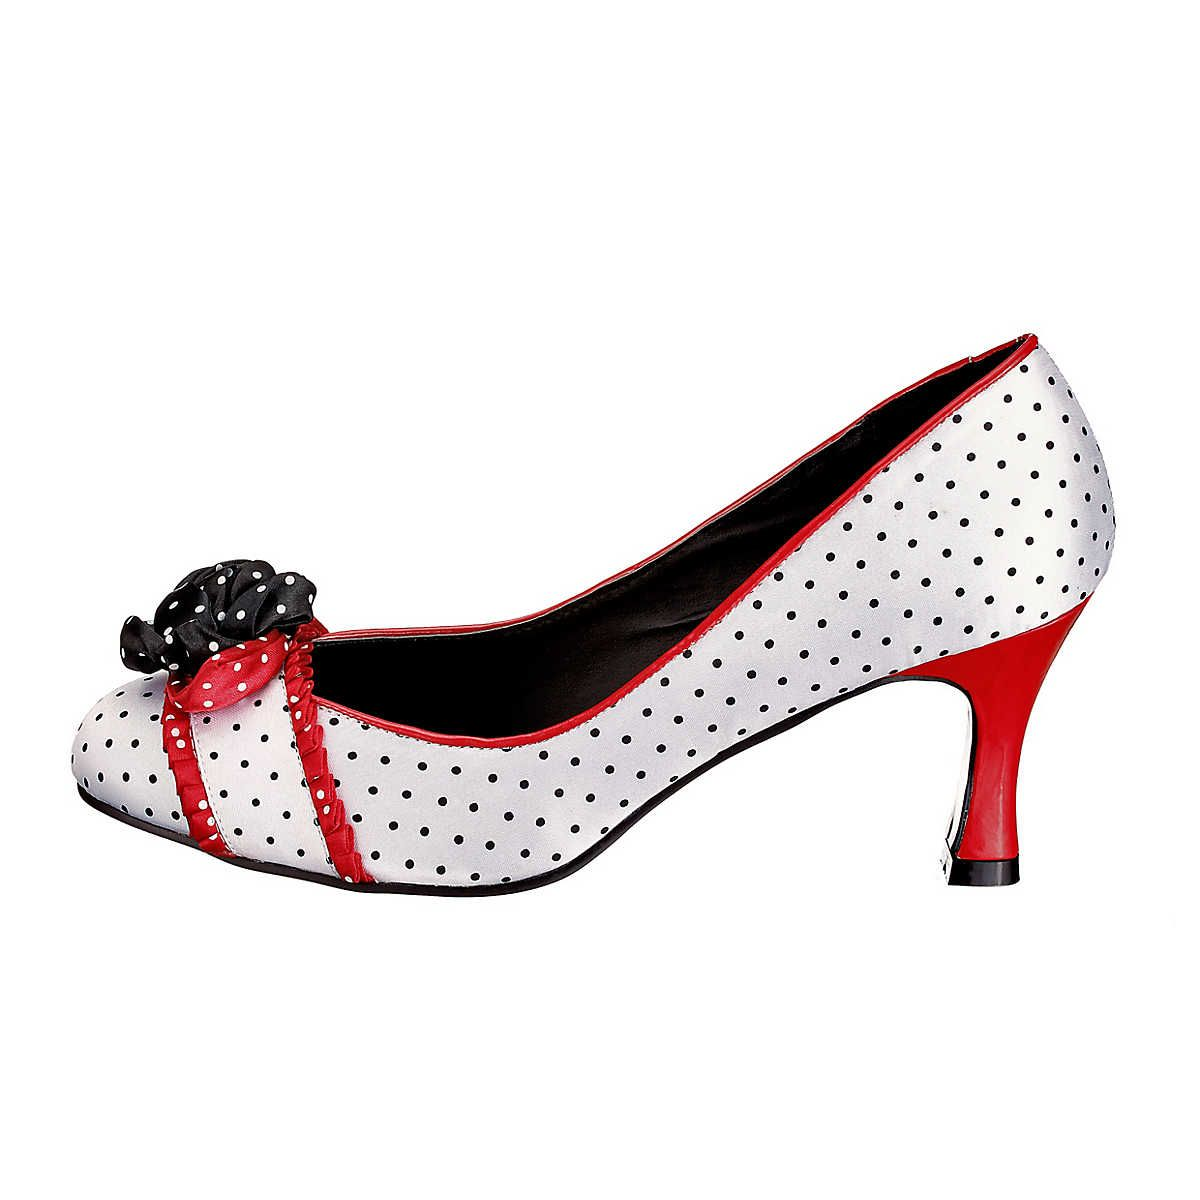 Pin auf polka dotted shoes!